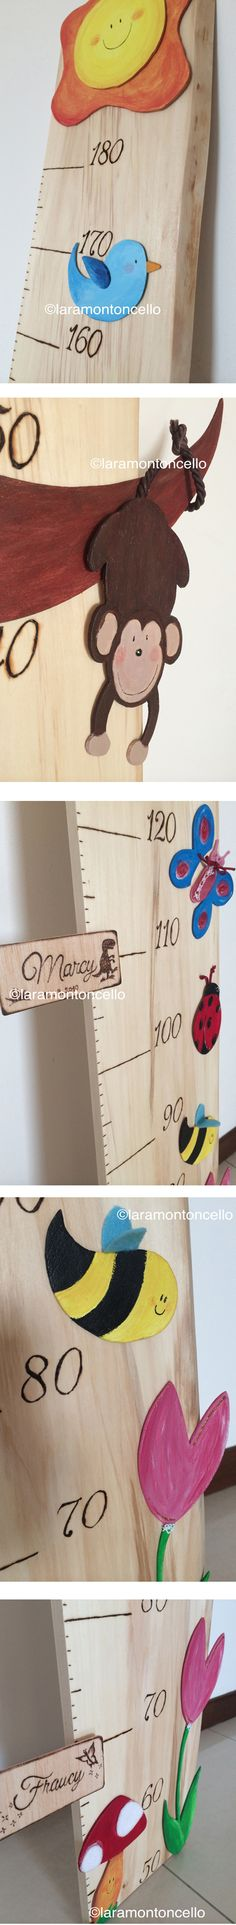 Handmade Children Wooden Growth Chart - DIY - pyrography - made by Lara Montoncello